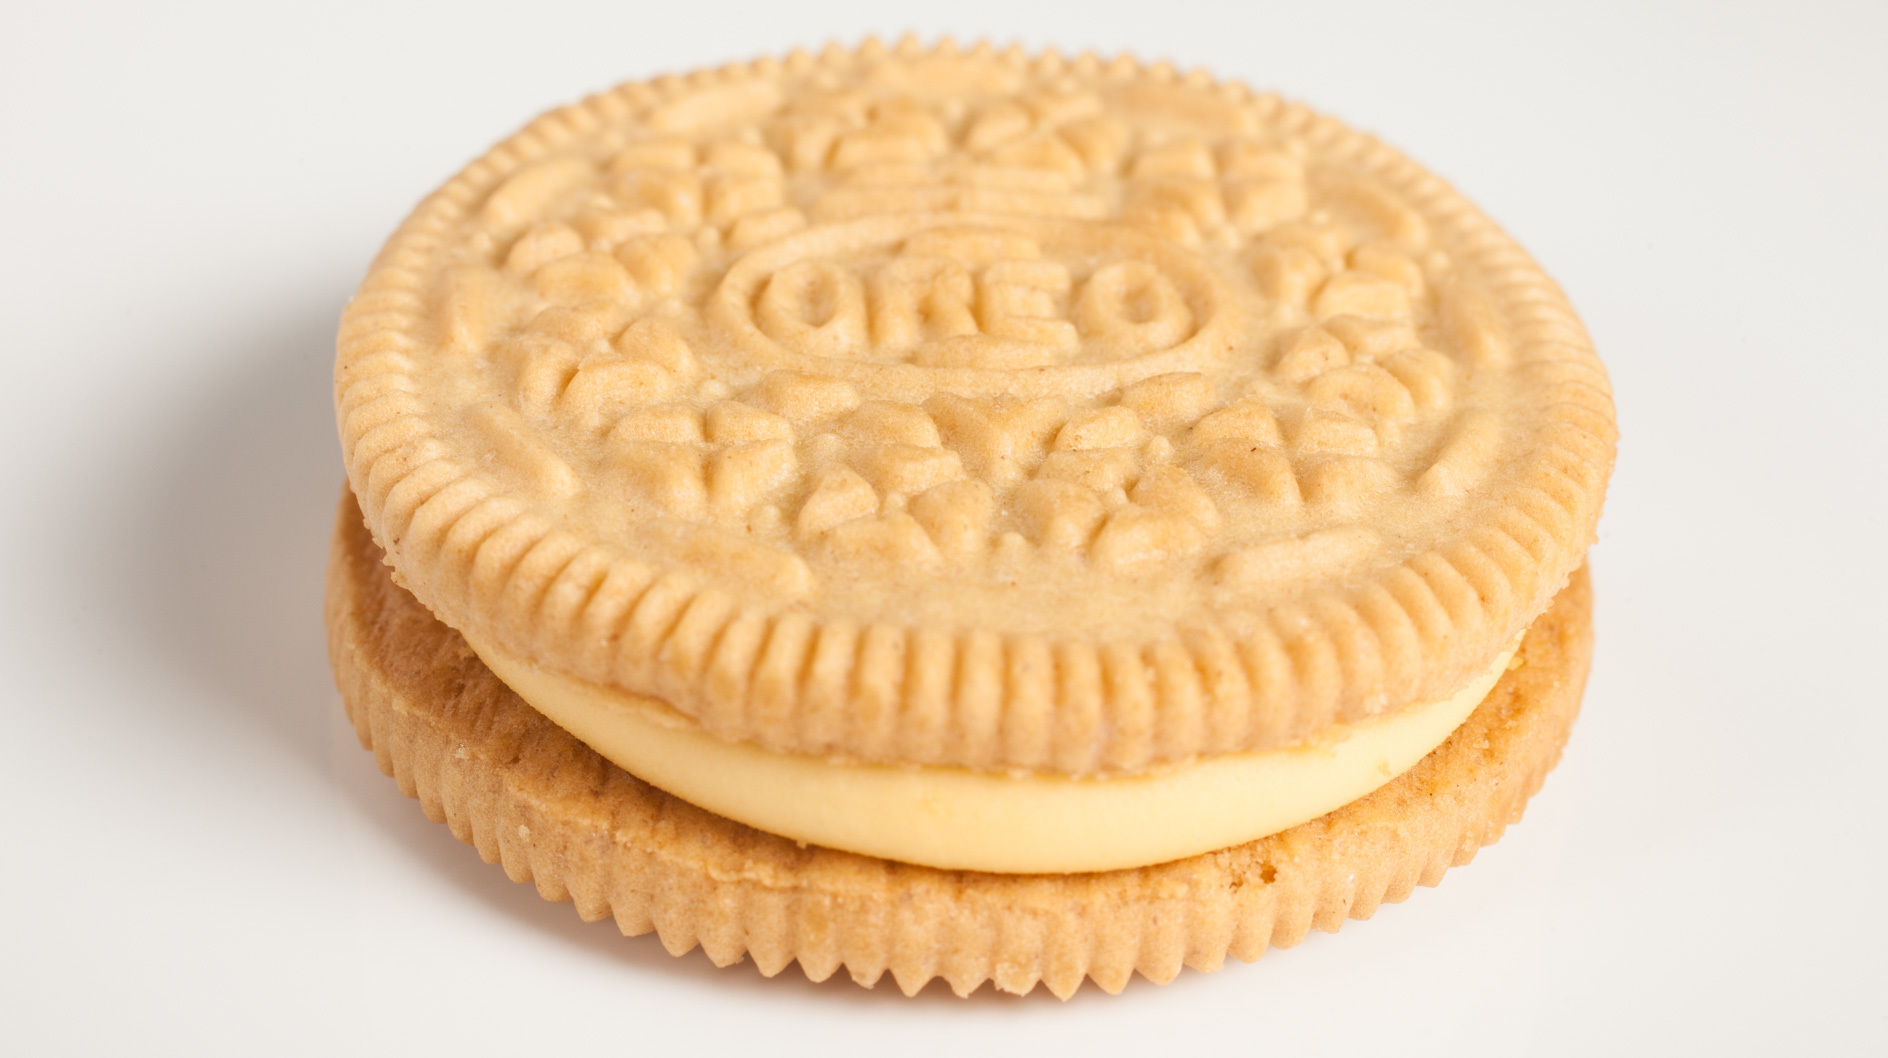 our ranking of all the oreo flavors from best to worst